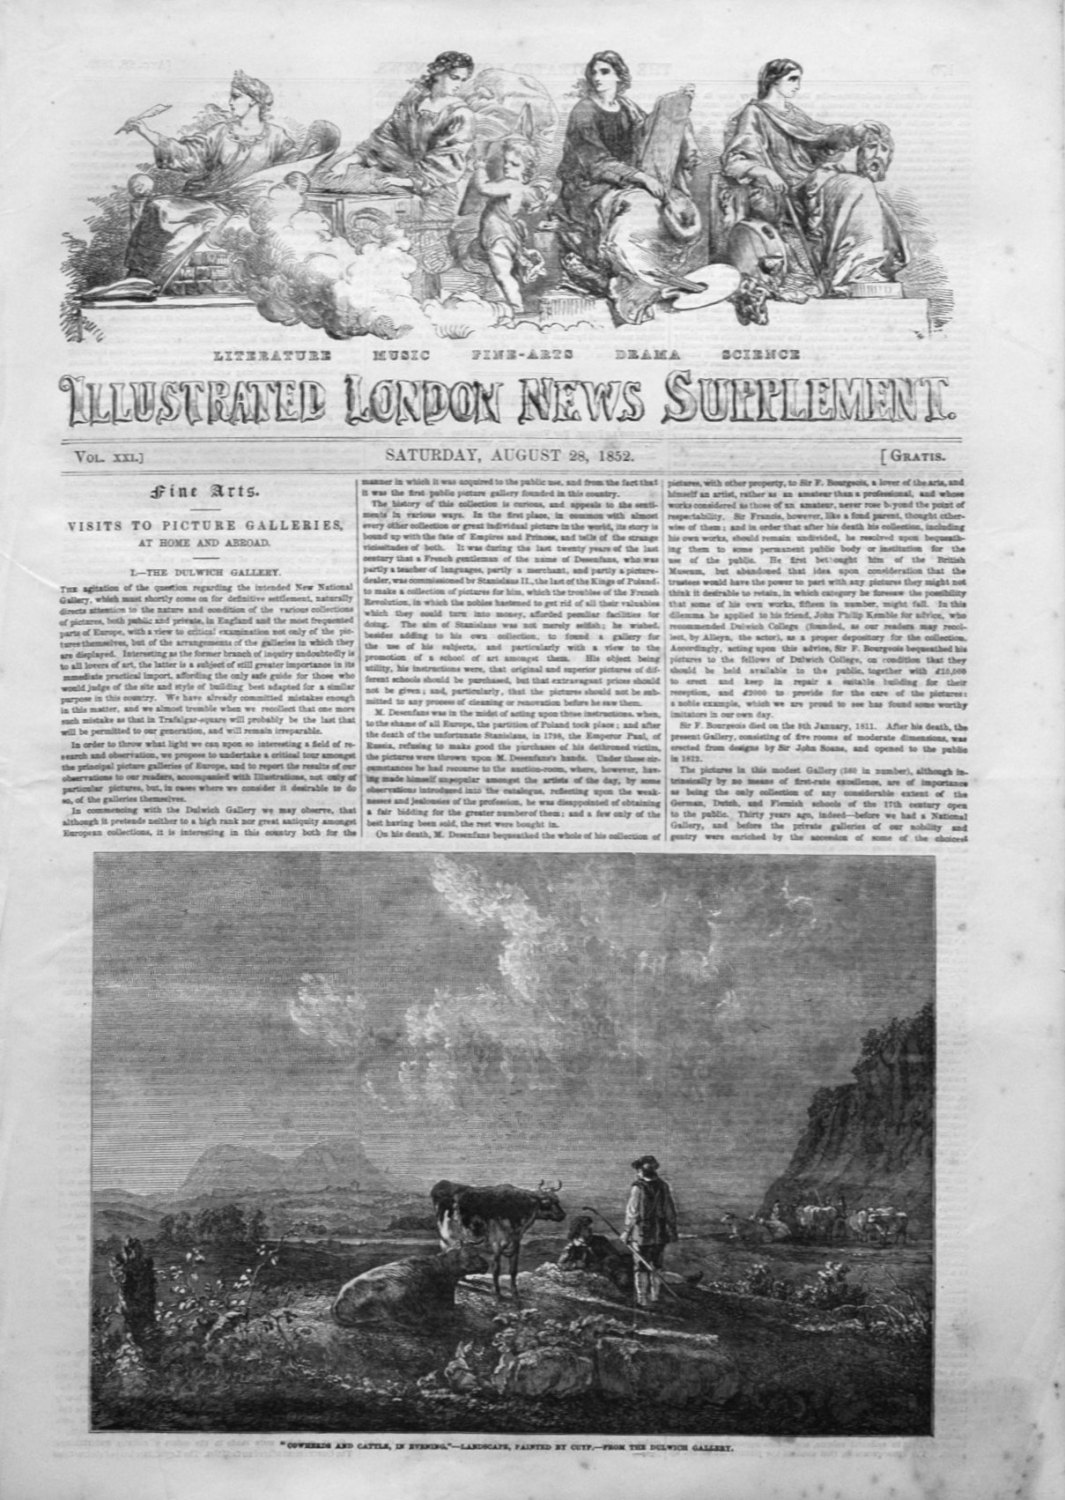 Illustrated London News (Supplement) for August 28th 1852.